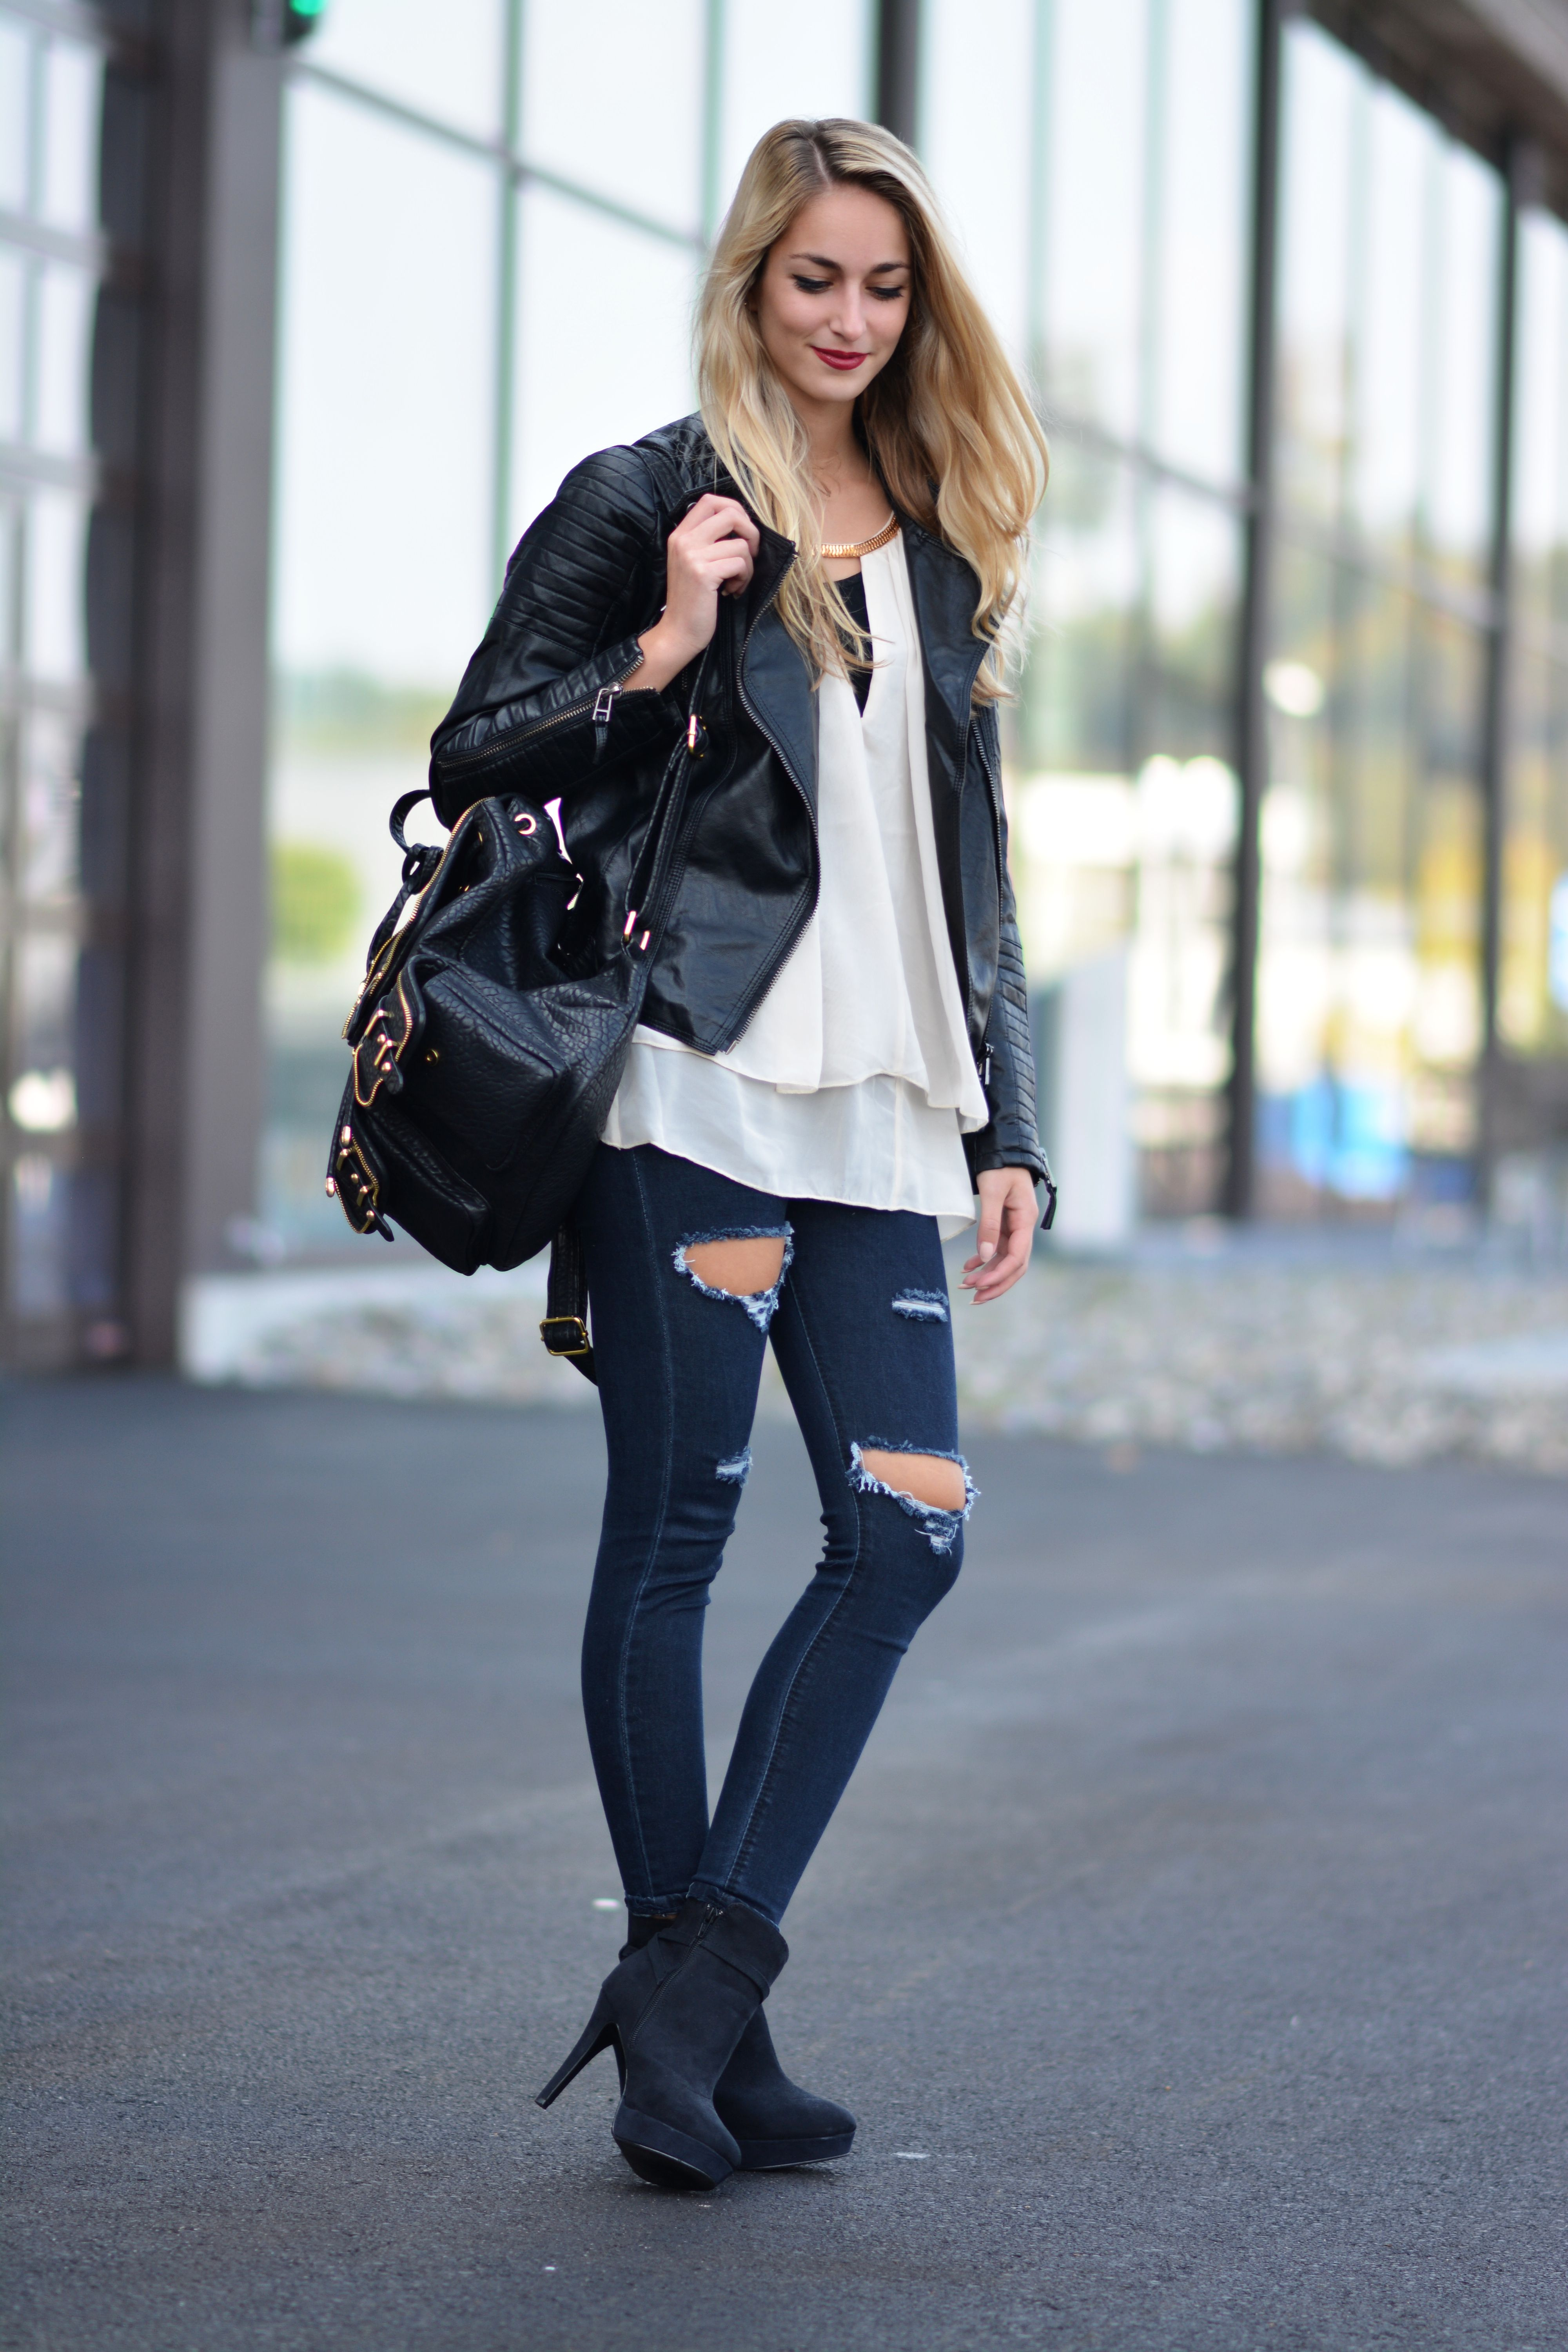 Women S Black Leather Biker Jacket White Silk Sleeveless Top Navy Ripped Skinny Jeans Black Suede Ankle Boots Skirt And Sneakers Fashion Black Leather Jacket [ 6000 x 4000 Pixel ]